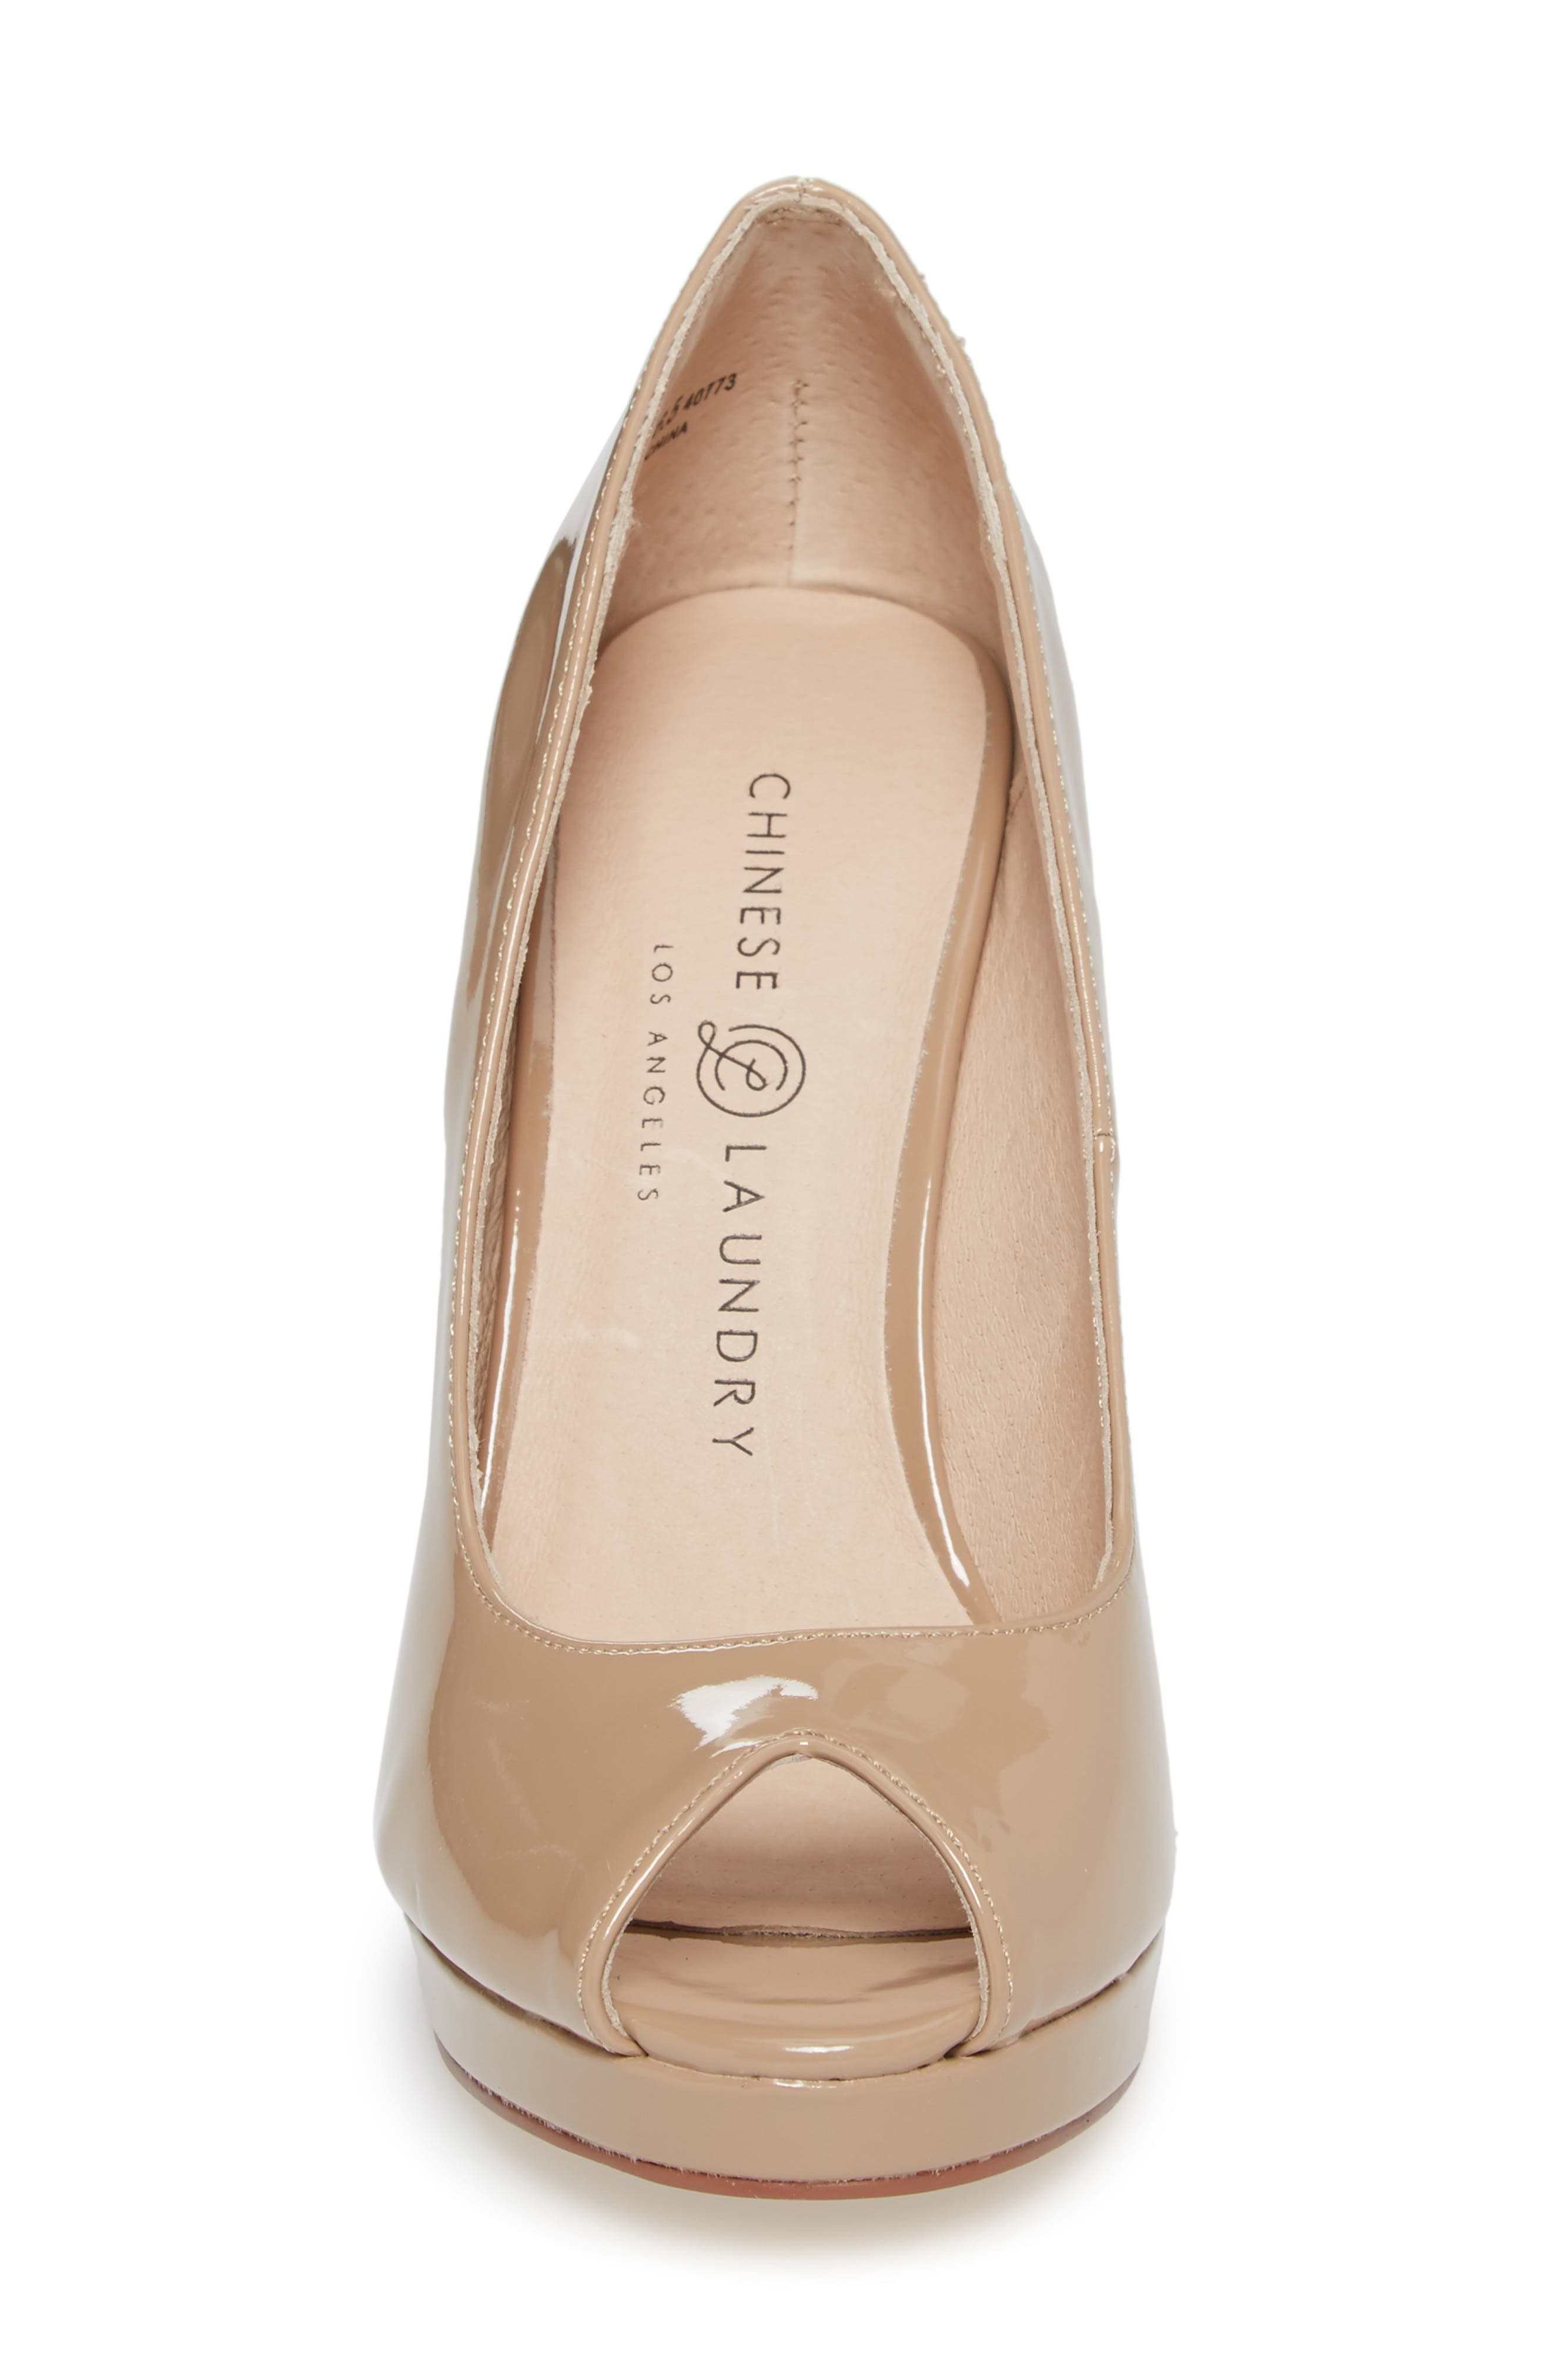 Fia Peep Toe Pump,                             Alternate thumbnail 4, color,                             Nude Patent